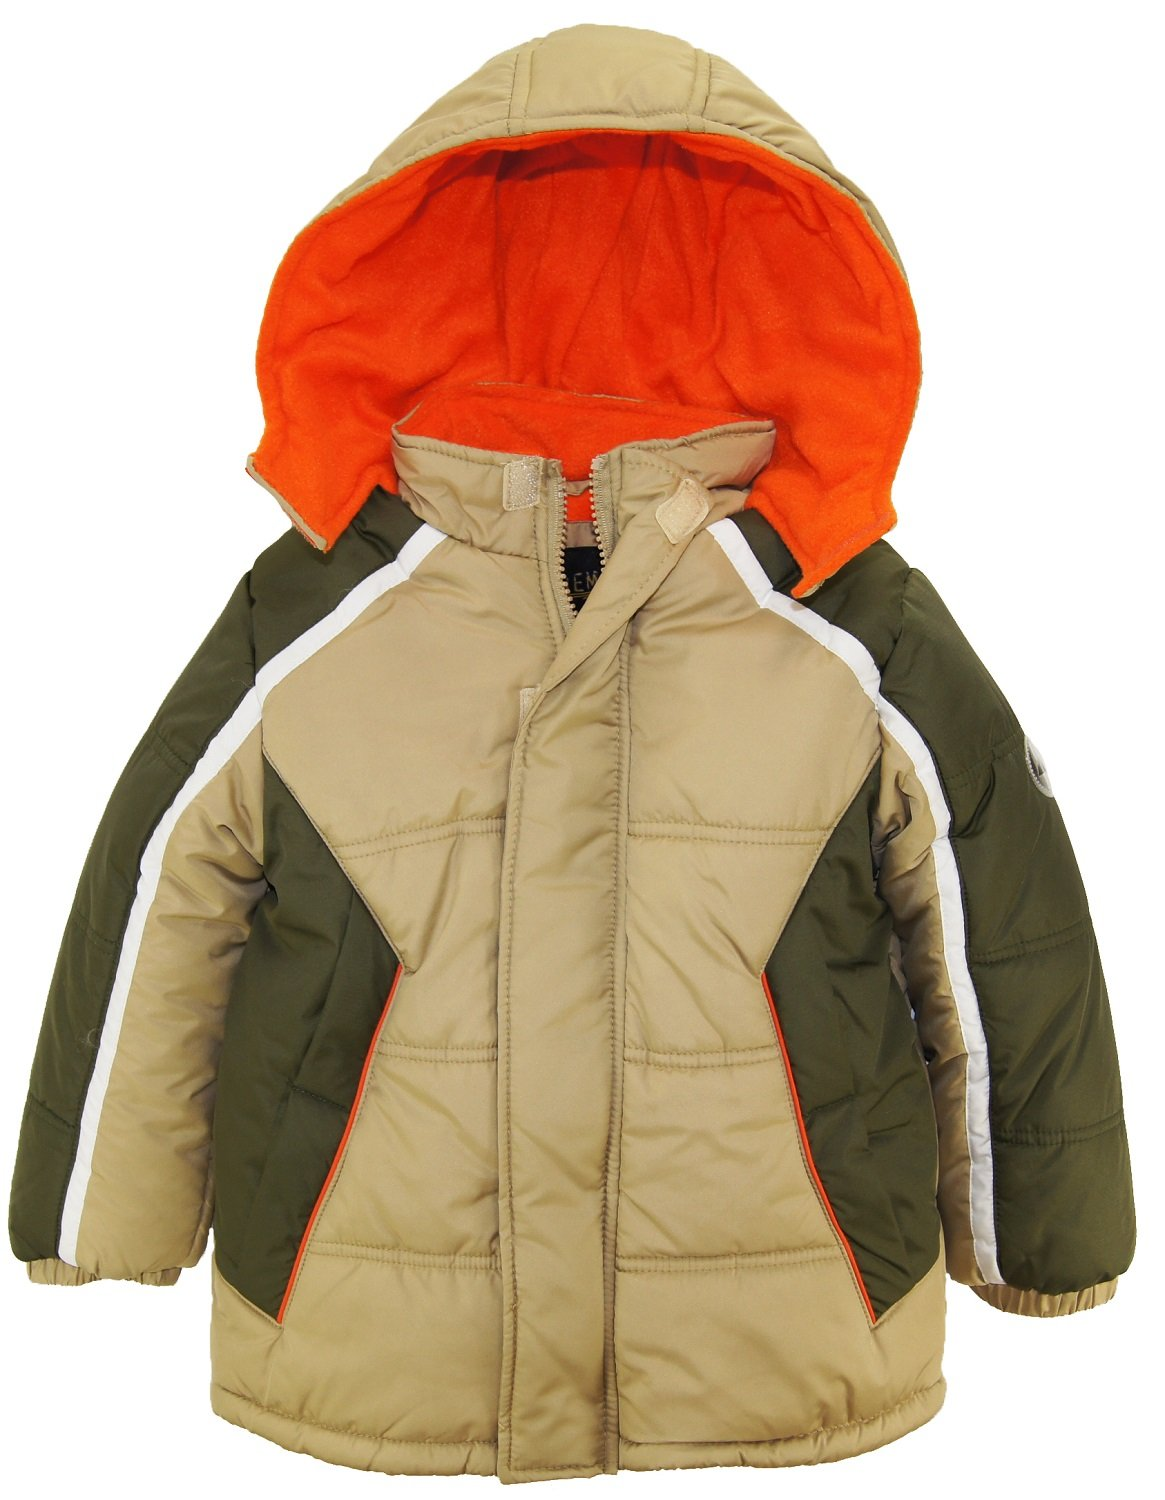 iXtreme Little Boys' Cut and Sew Colorblock Puffer, Sand, 5